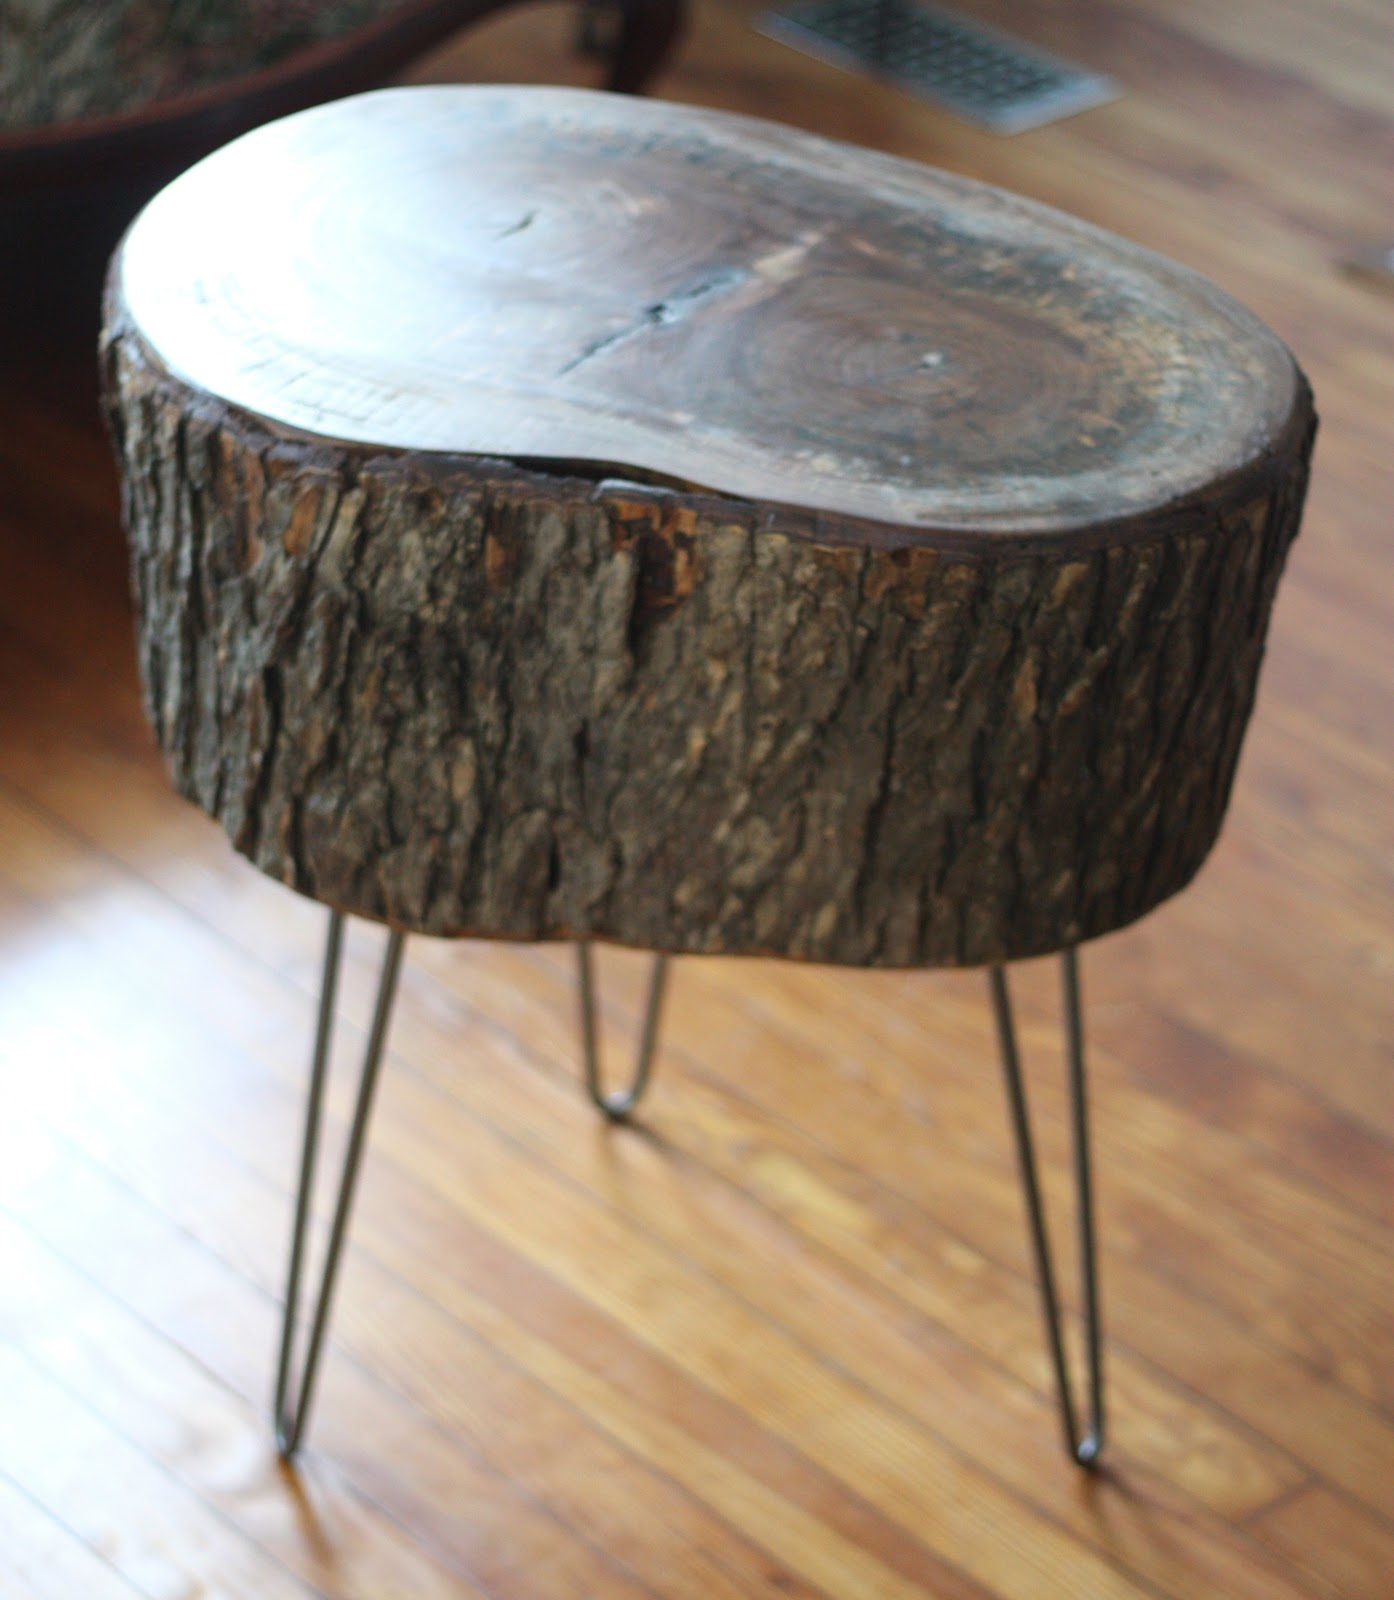 how diy stump table apart make tree wood log accent oriental desk lamp faux marble end target white chinese style lamps bedside designer placemats and napkins folding outdoor side